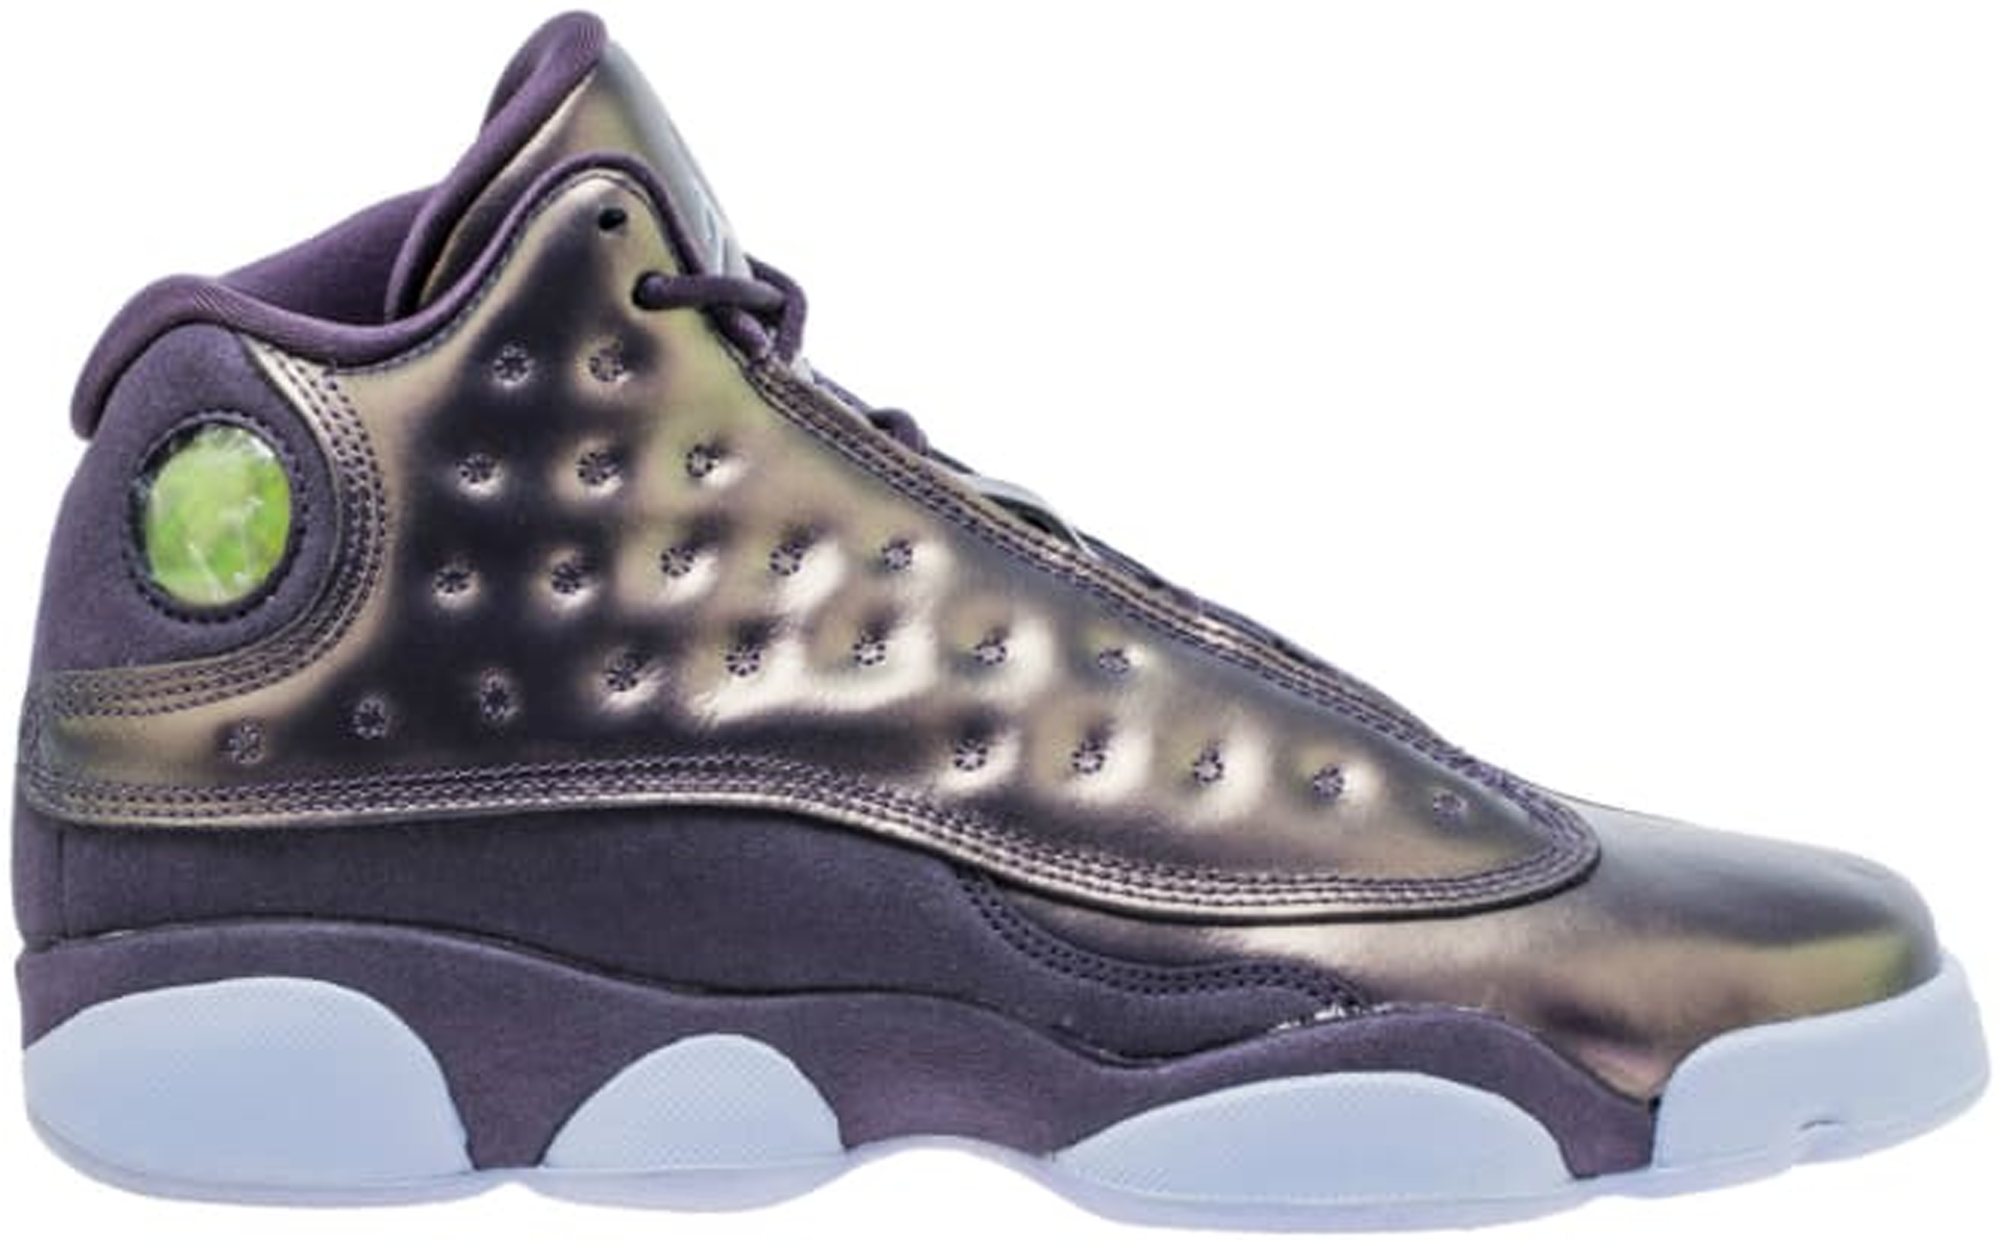 Jordan 13 Retro Dark Raisin (GS)